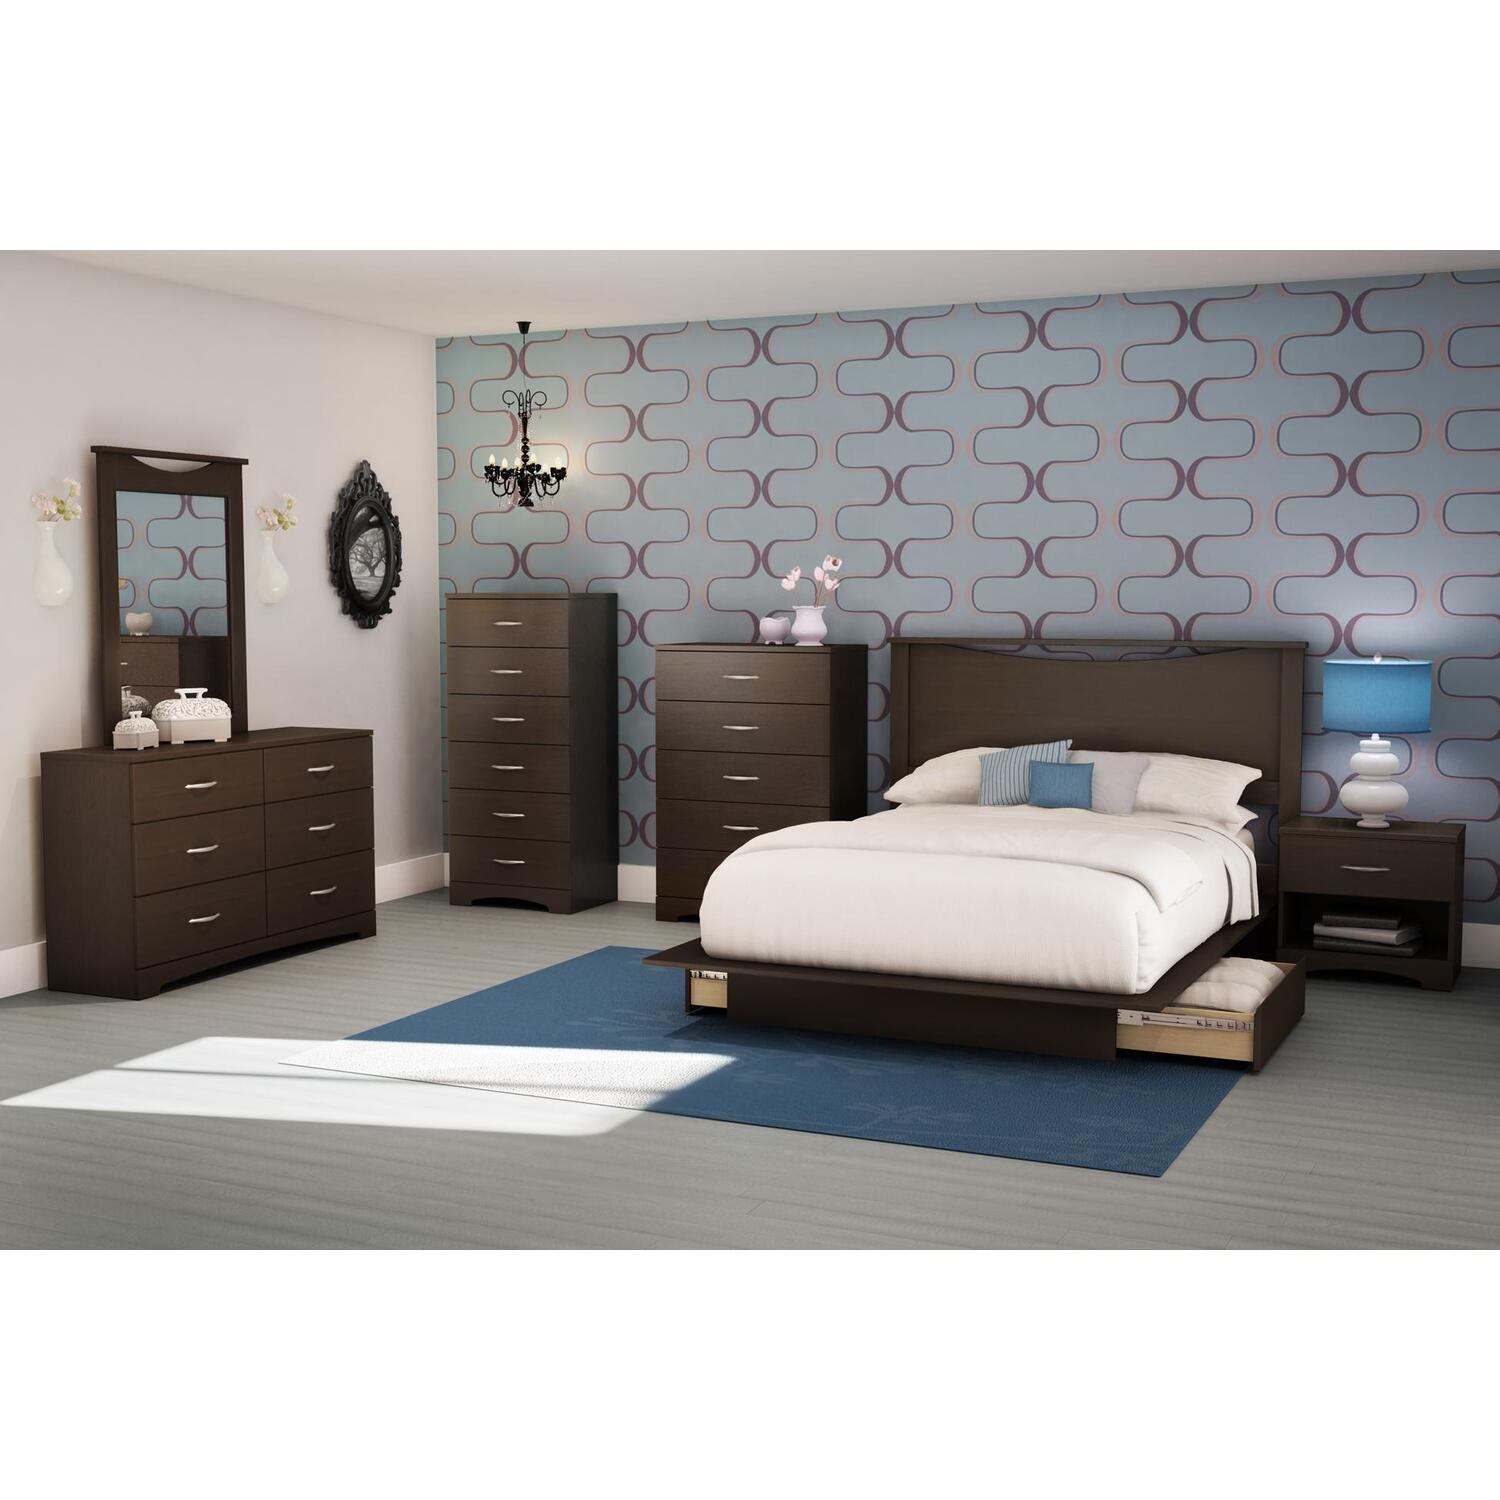 Back Bay Full/Queen Platform 7 Piece Bedroom Set - $1595.99 | OJCommerce